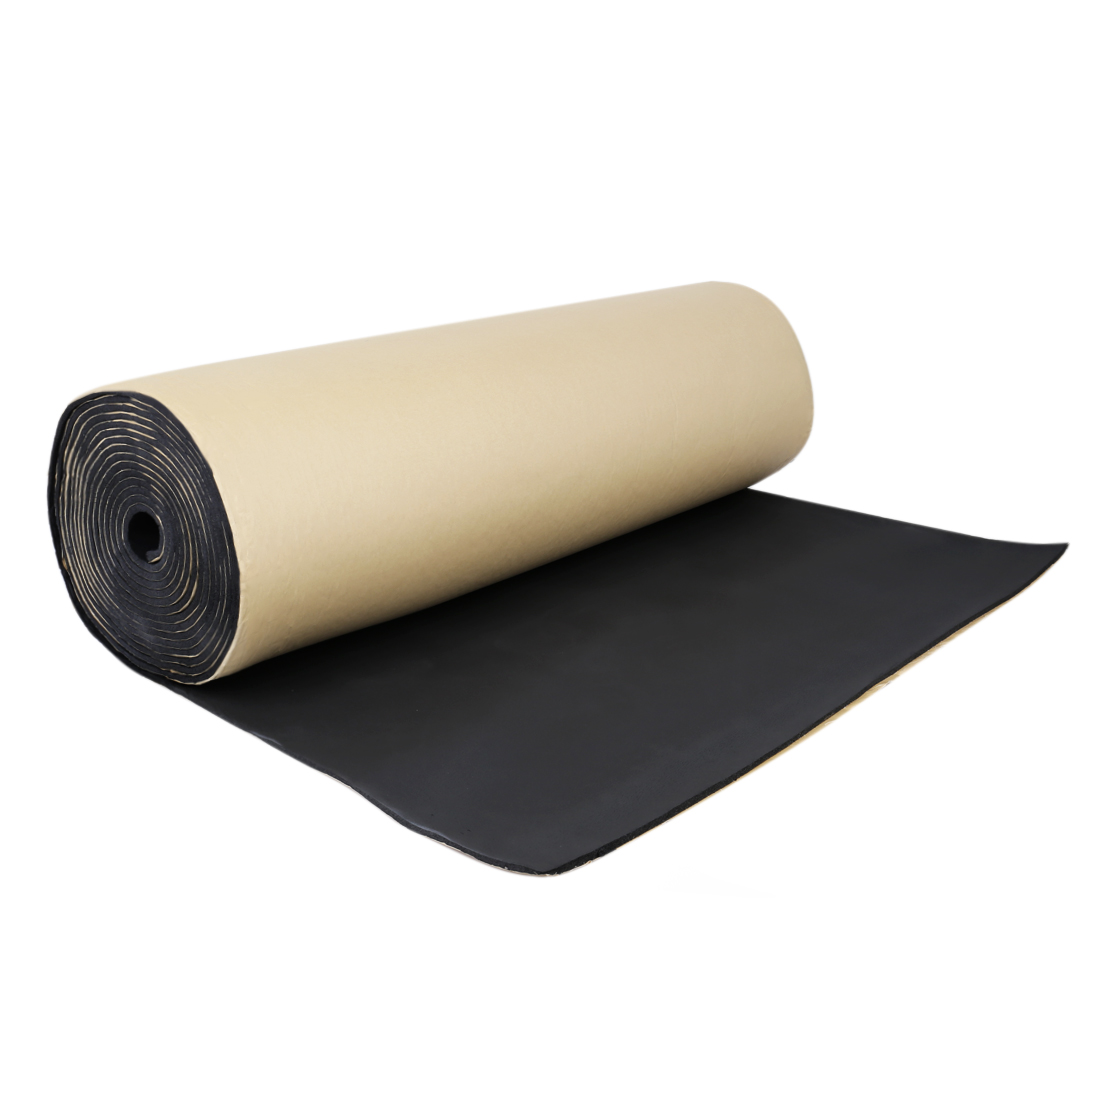 "197mil 6.46sqft Car Cell Foam 5mm Sound Proofing Insulation Deadener Mat 40""x24"""